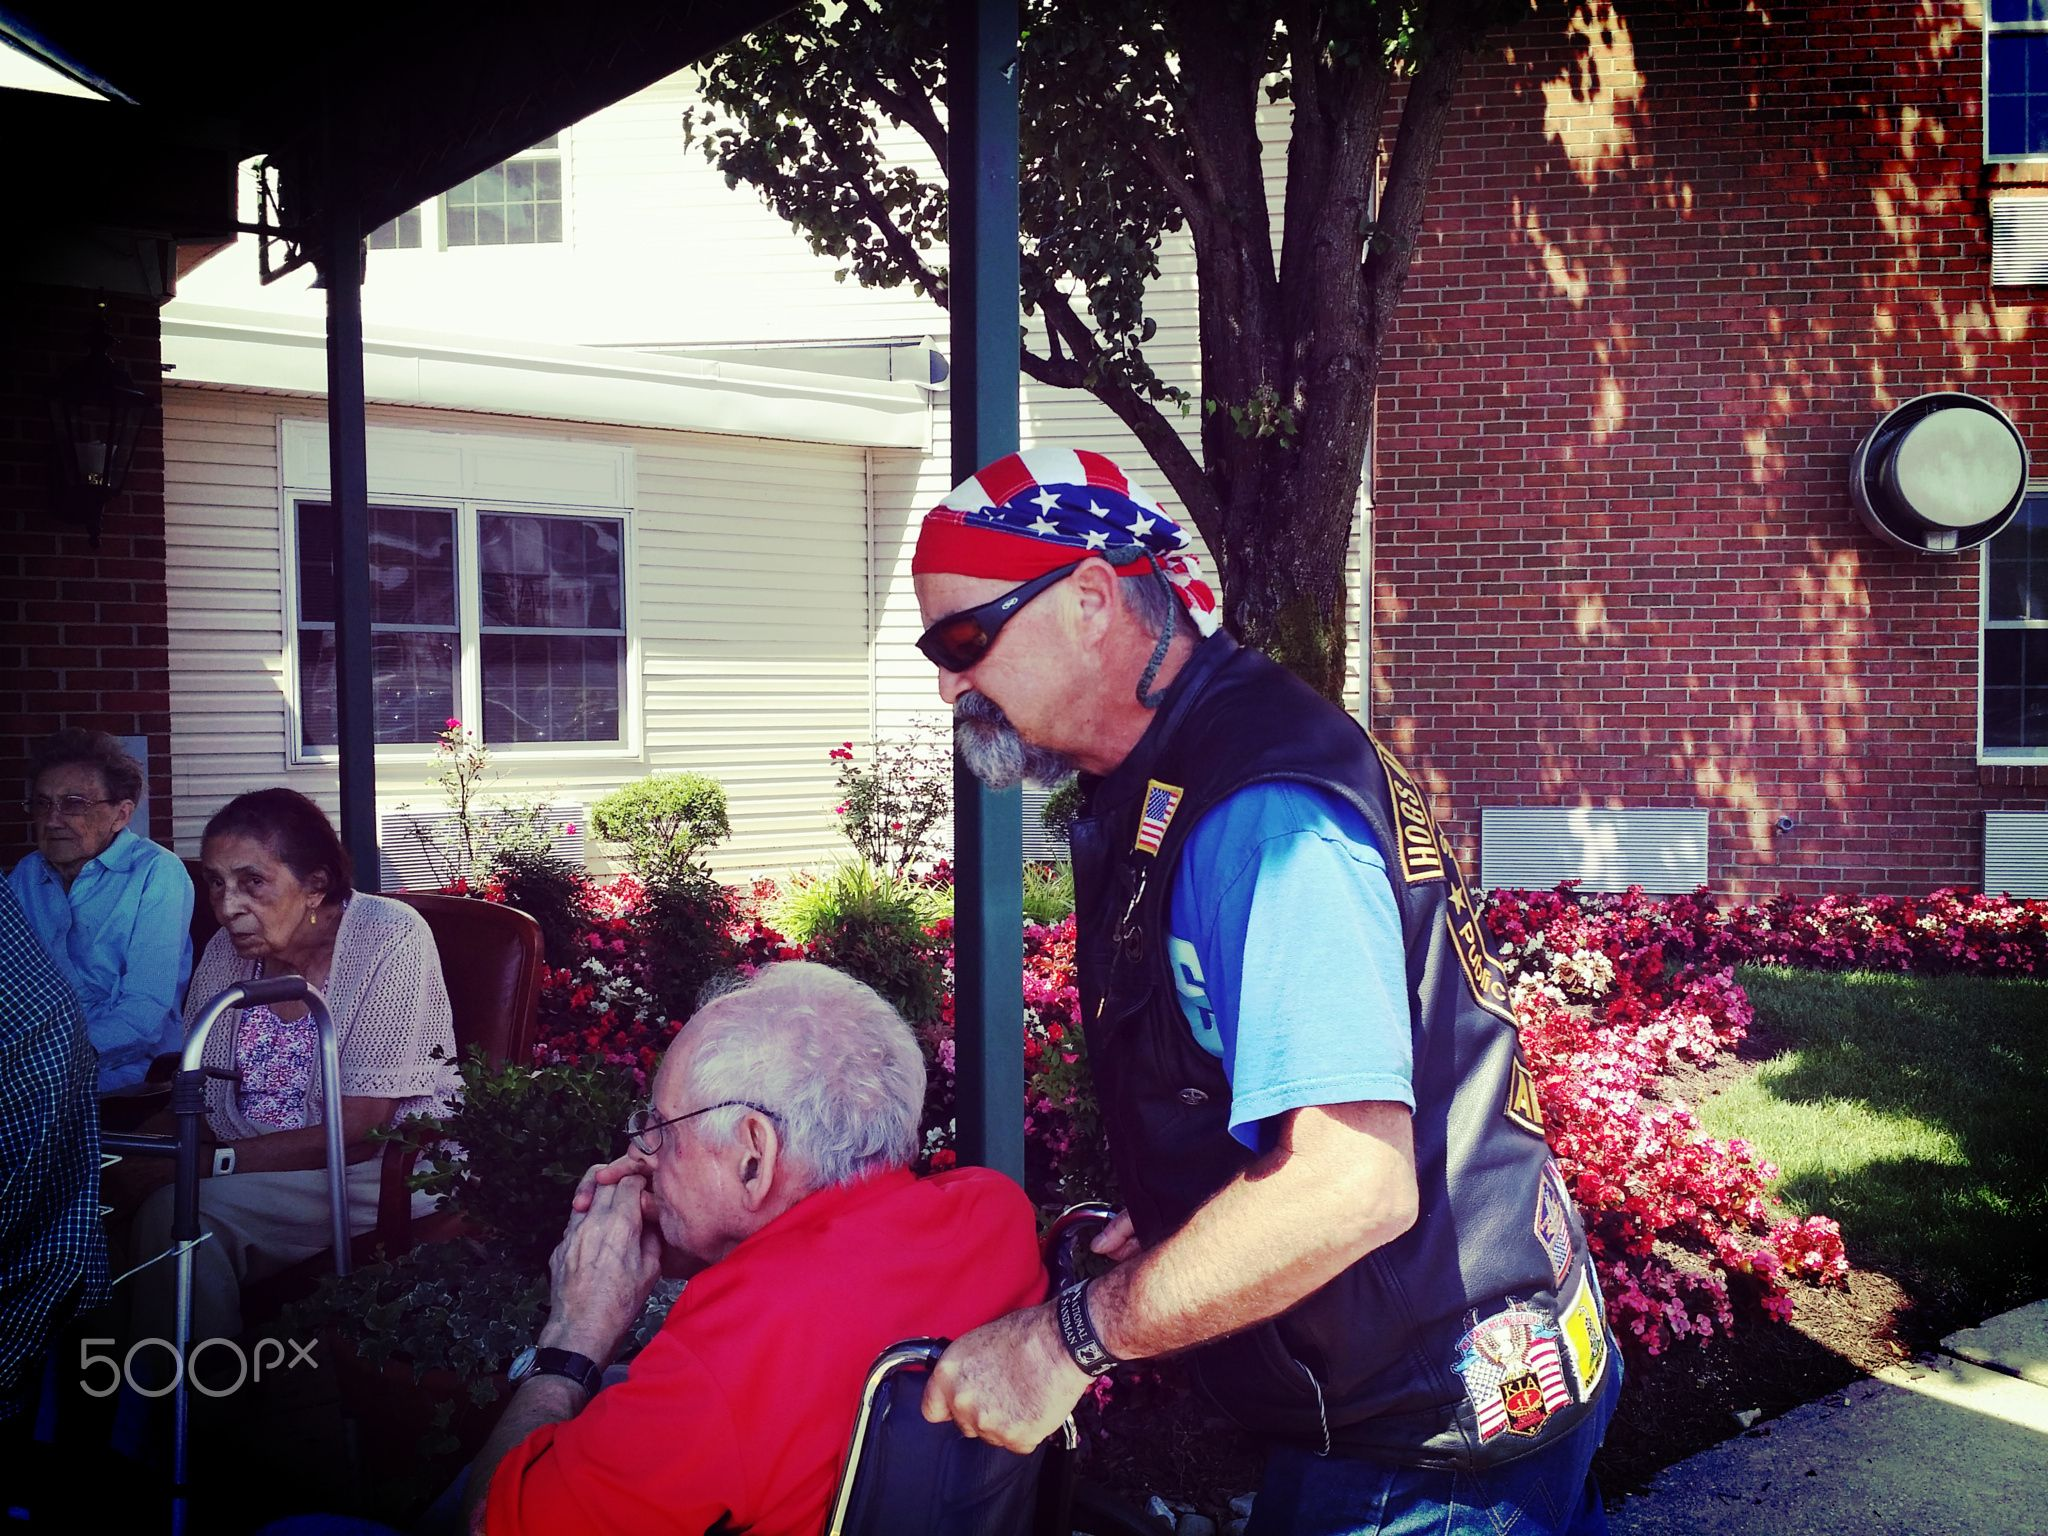 Bikers visiting Senior Citizens - We returned to an assisted living facility to visit with residents on Saturday. Some are veterans, a few are shy and not so receptive to coming outside and meeting with us and others loved the motorcycles and even got their pictures taken with them. Smiles all around! :)